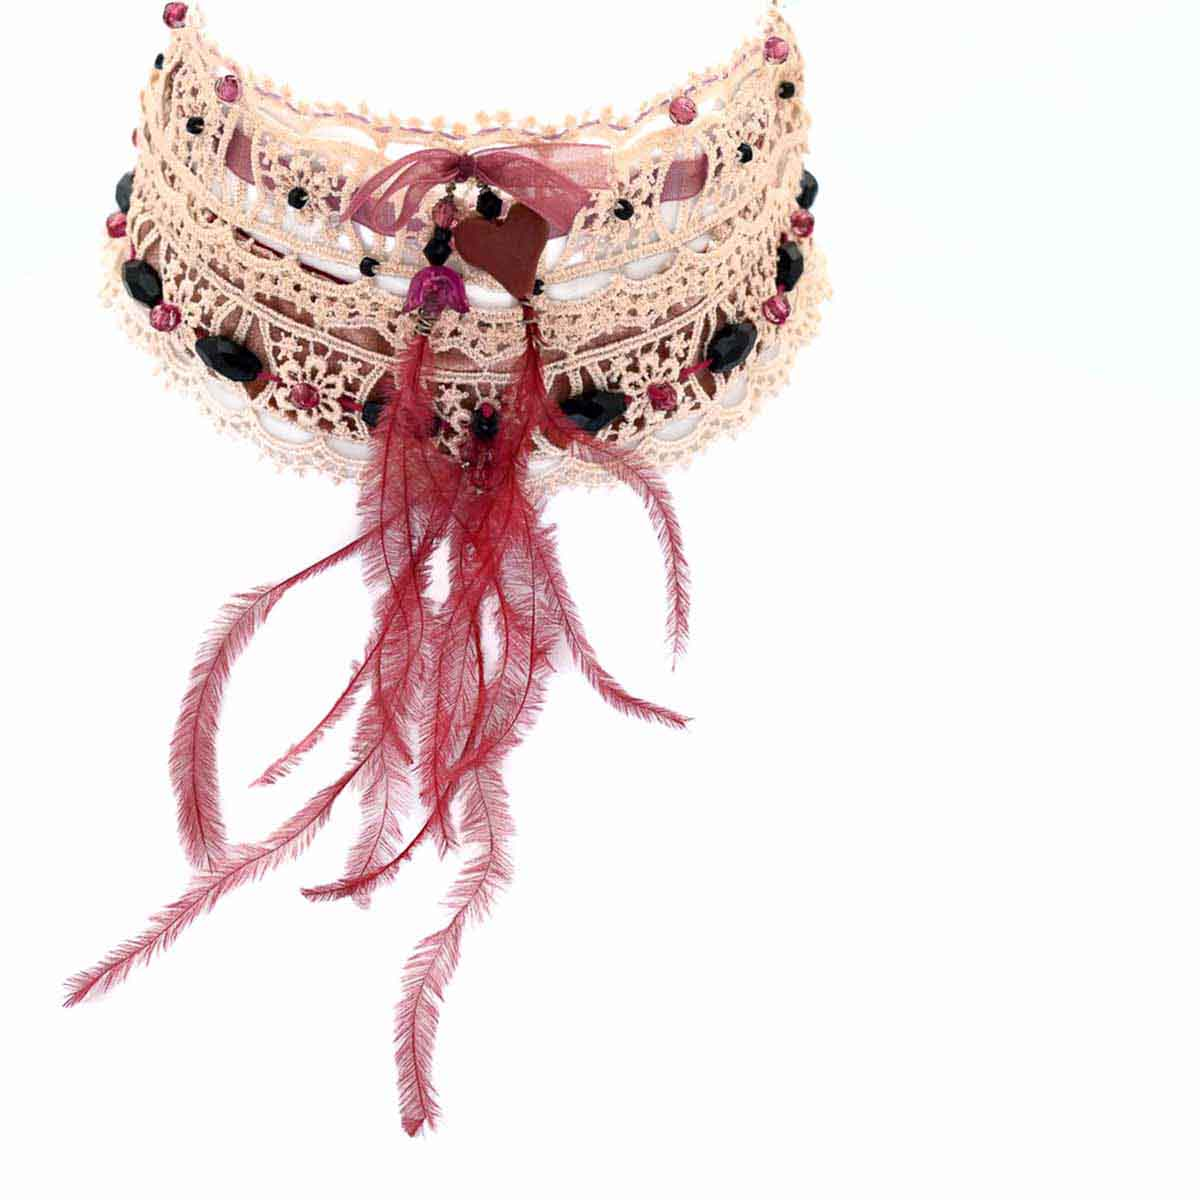 Lace & Velvet chocker is inspired by French cabaret jewelry and clothes. Designed and made for Bead a Boo by Katerina Glinou.